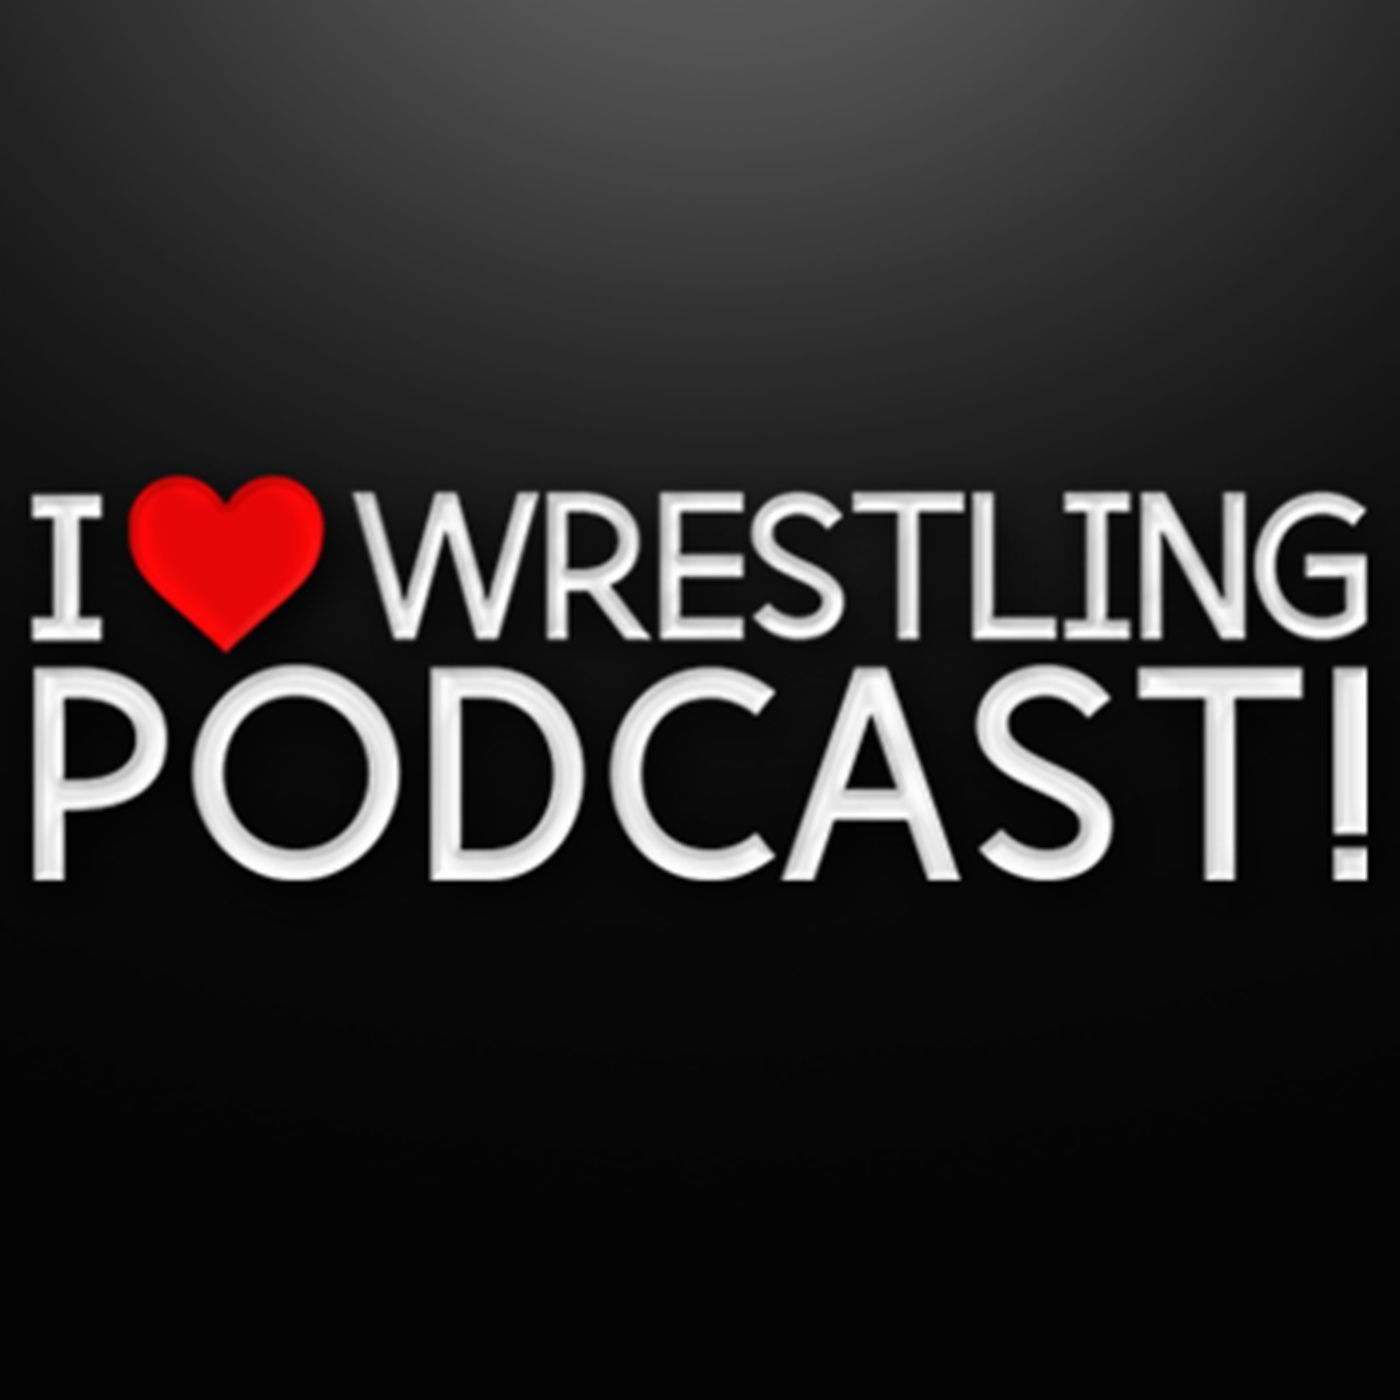 I Heart Wrestling Podcast